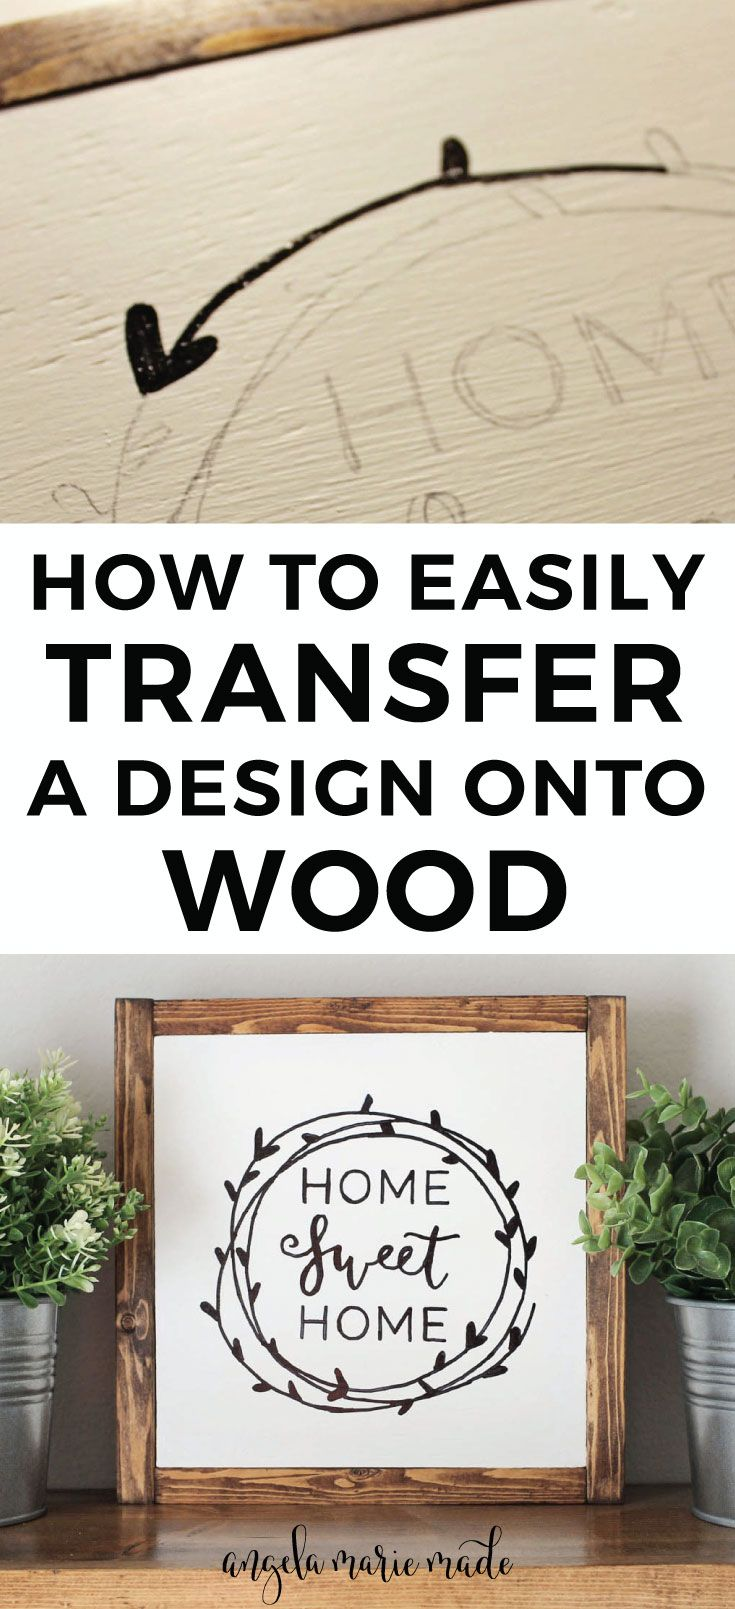 How To Easily Transfer A Design Onto Wood Angela Marie Made